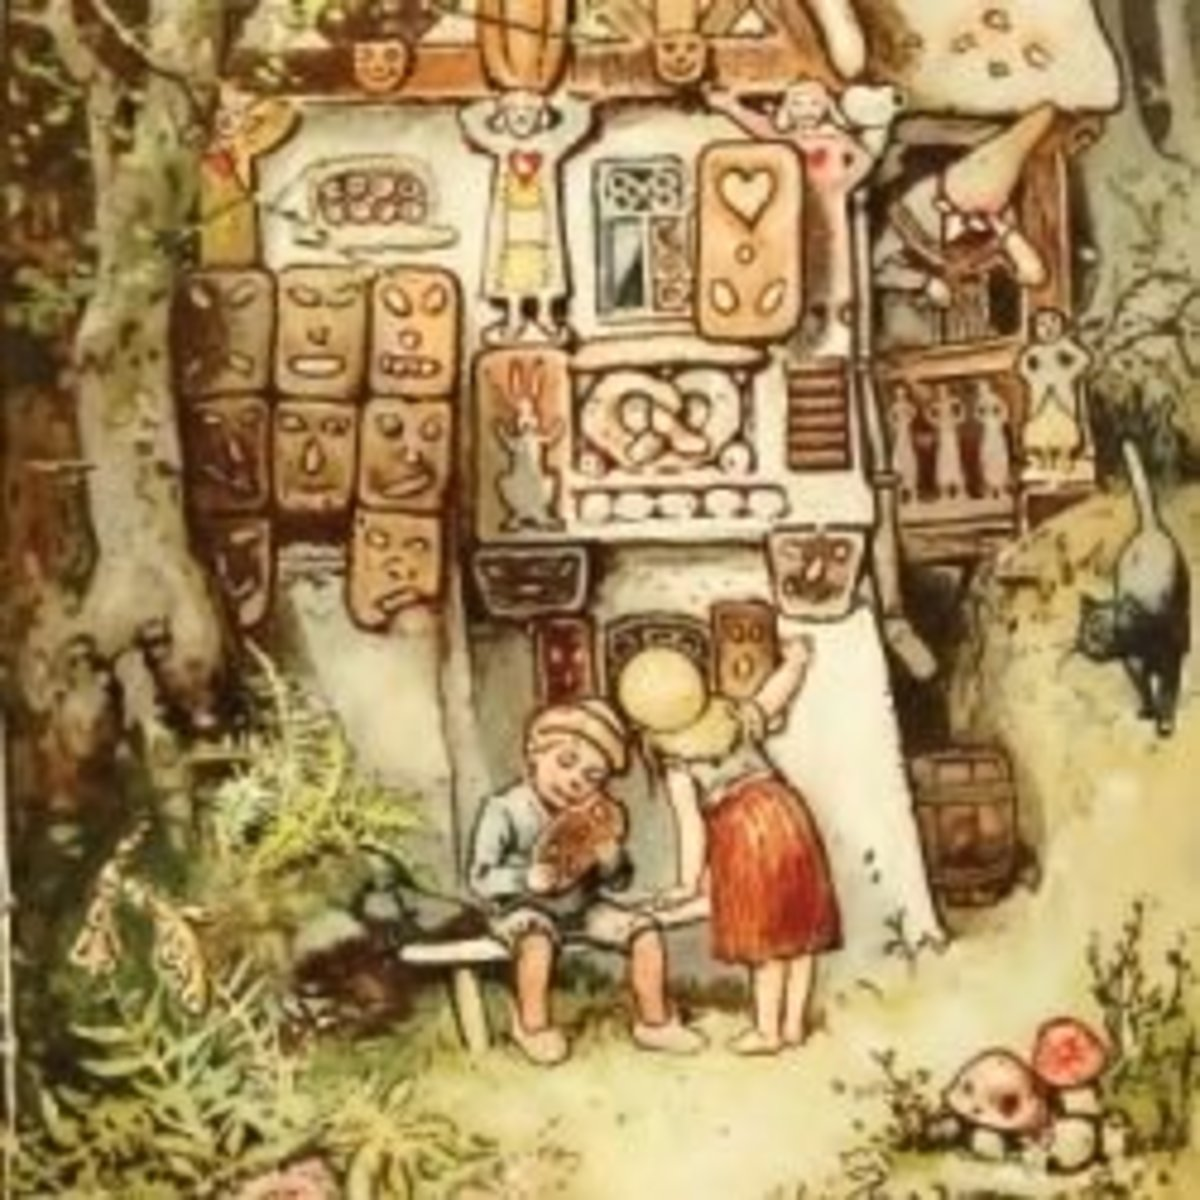 The Story of Hansel and Gretel: Summary, Symbolism, and Interpretations